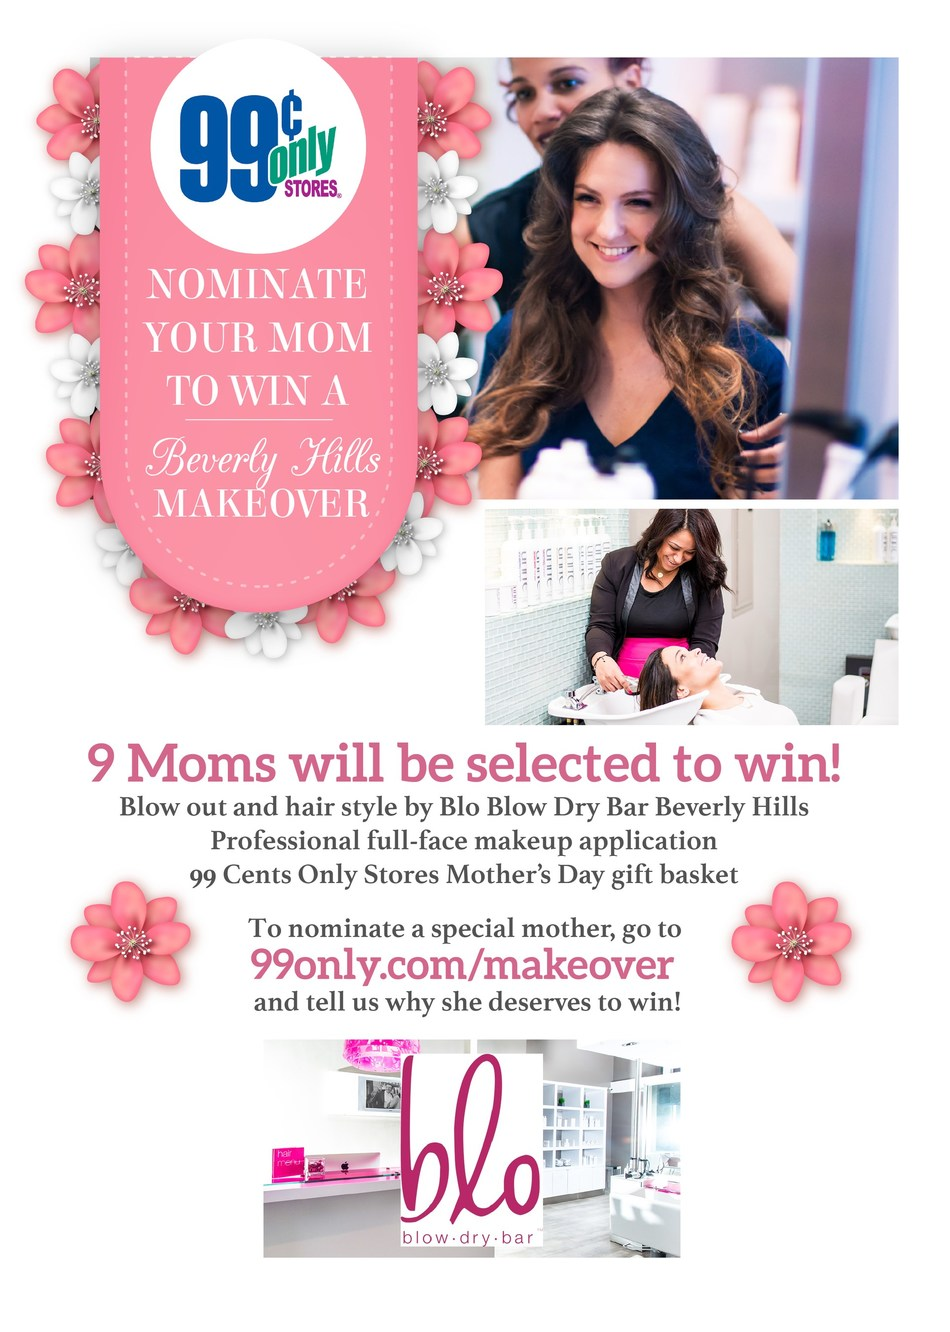 99 Cents Only Stores Mommy Makeover!